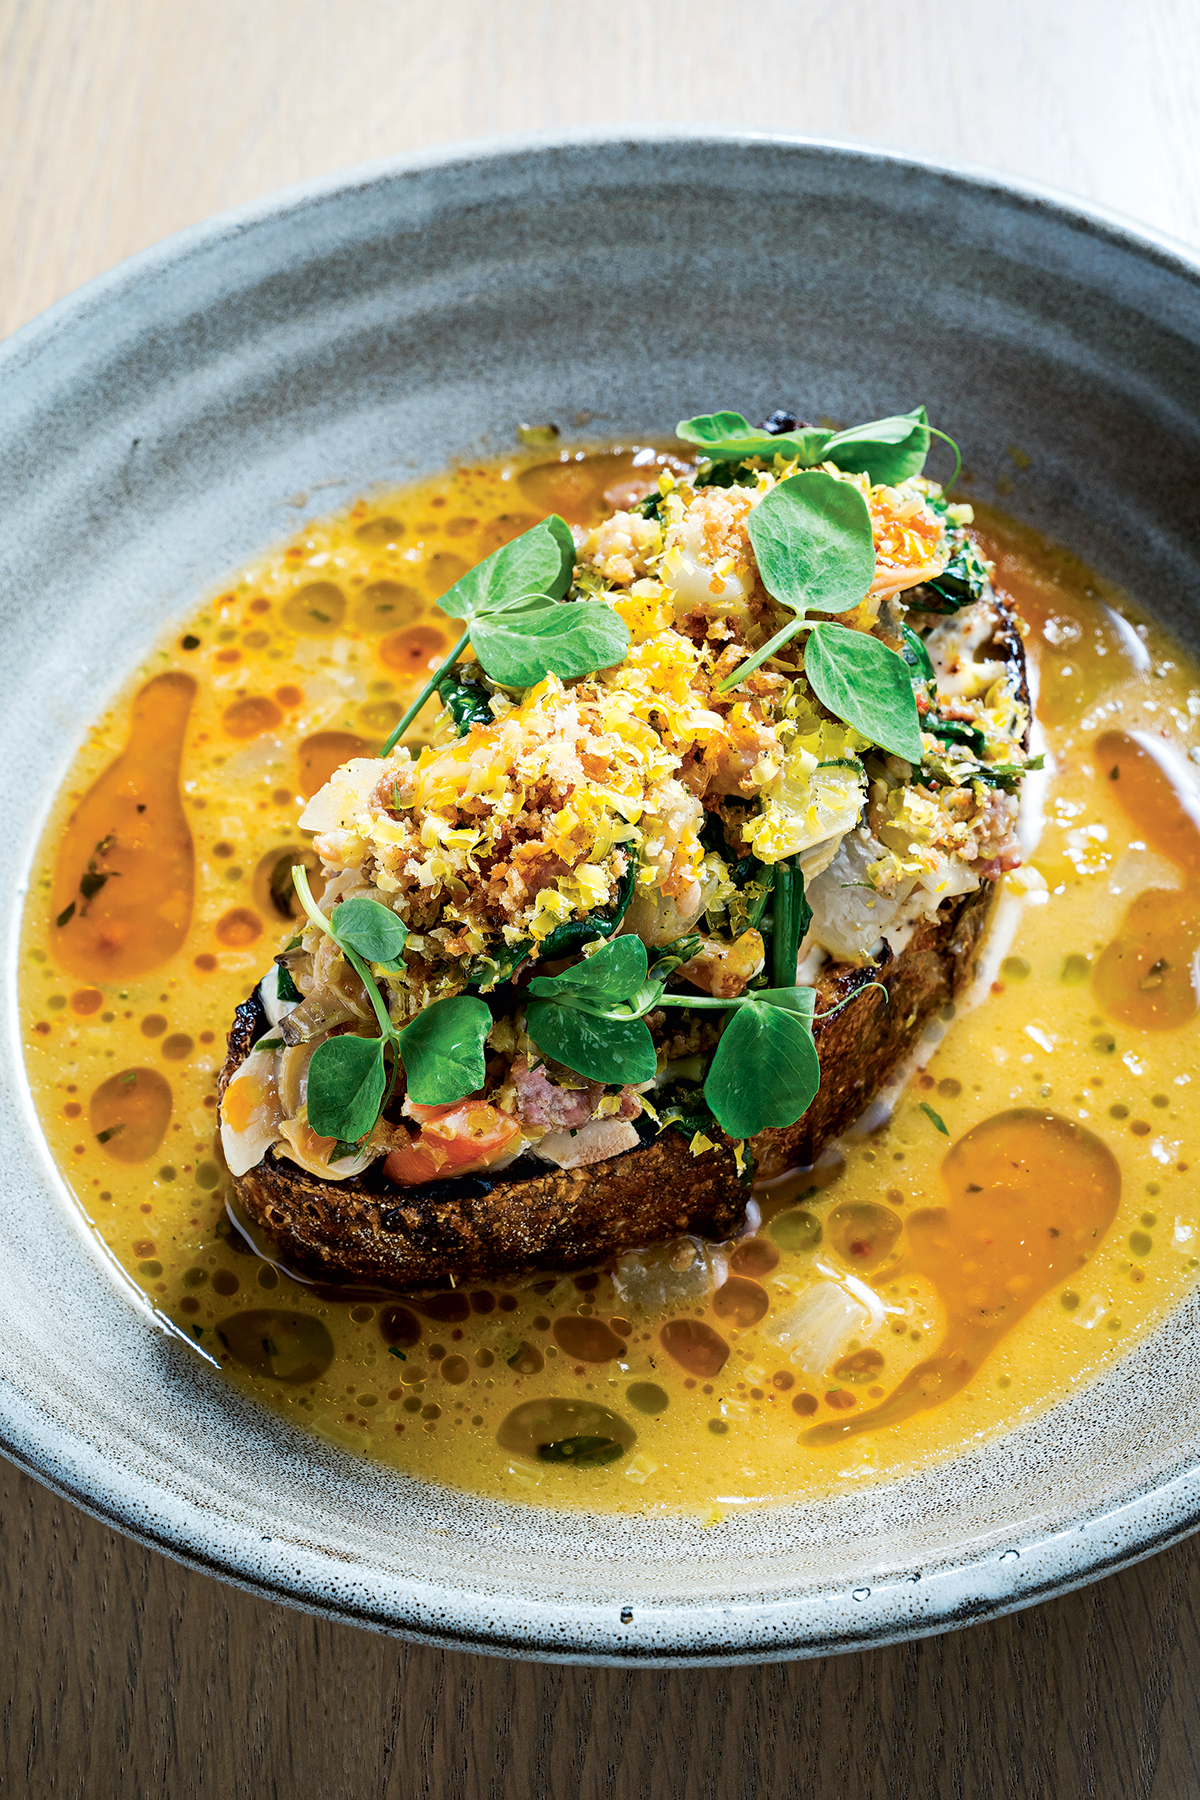 Creamy, briny clam toast. Photograph by Scott Suchman.